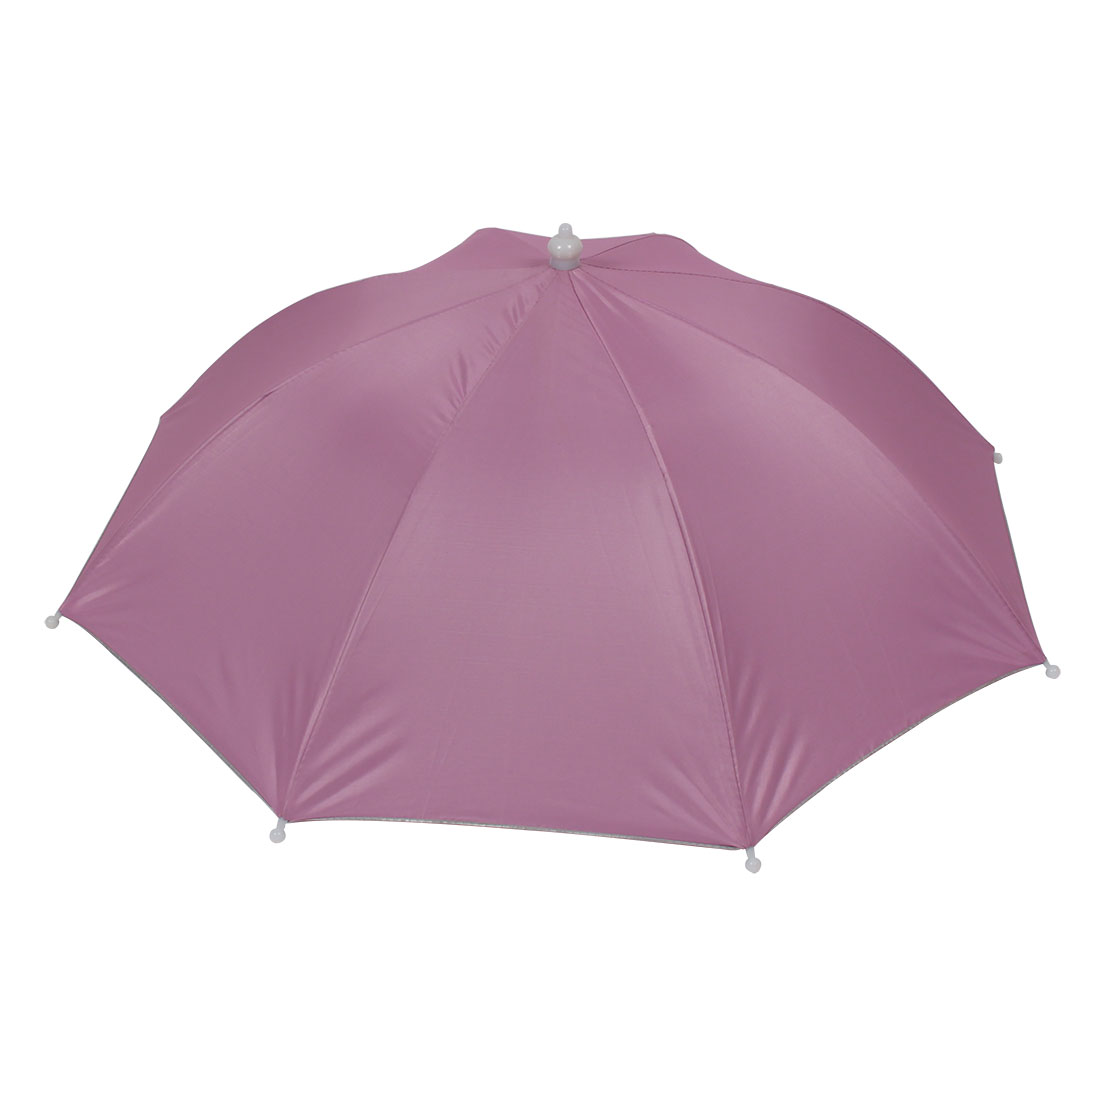 Pink Outdoor Sports Fishing Umbrella Hat Headwear